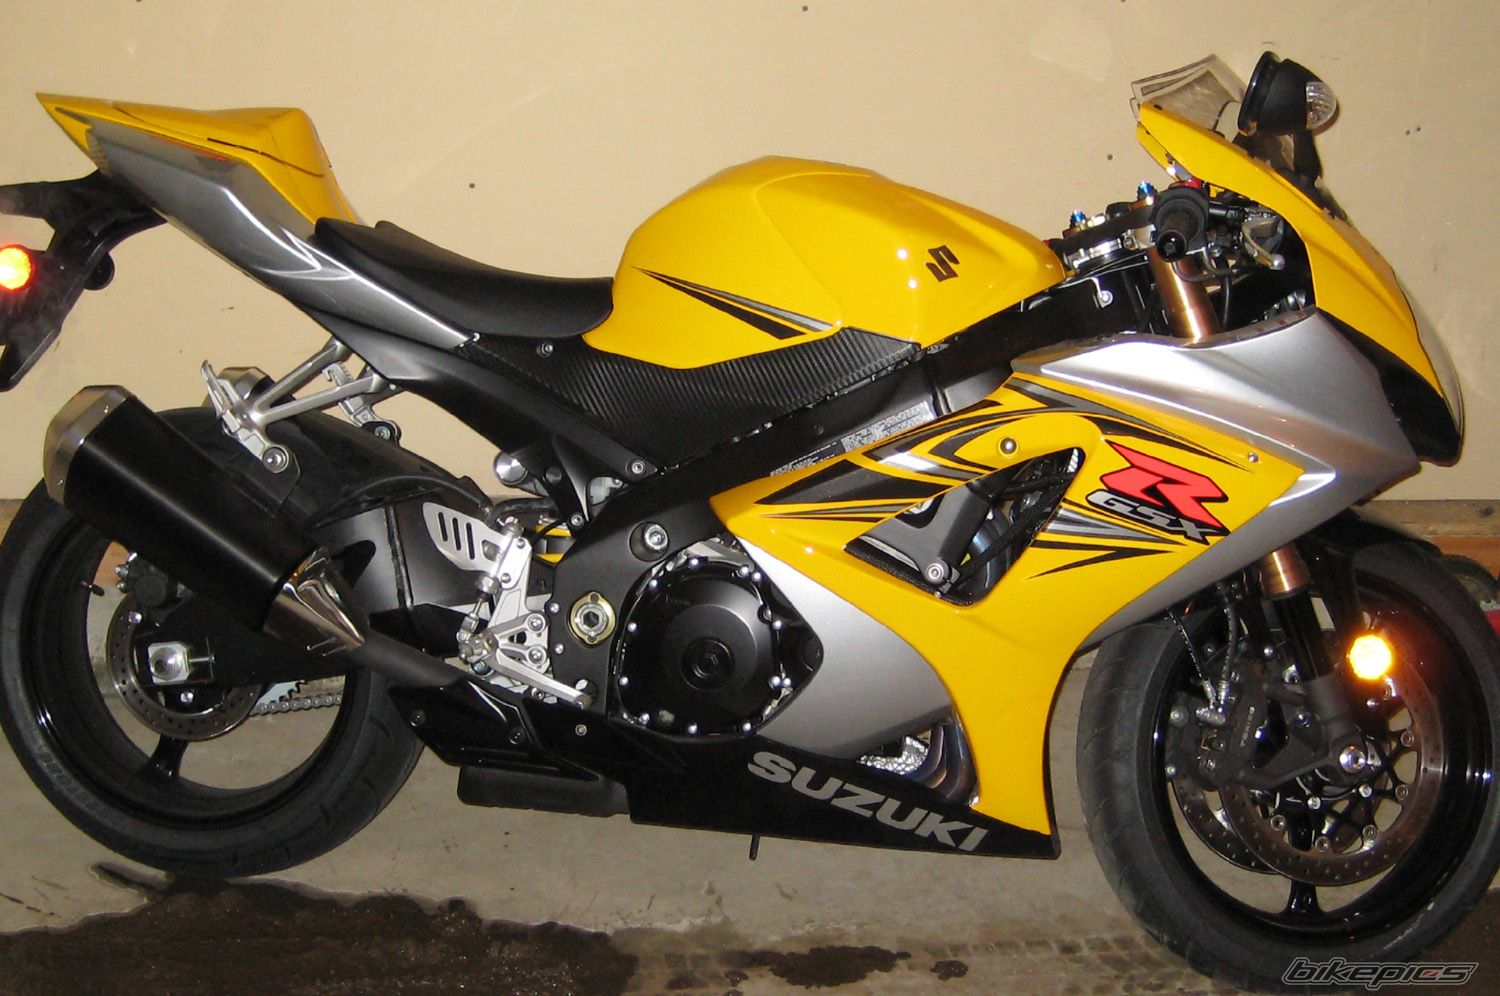 New Plastics/Tank for sale GSXR 1000 07/08 Checking Interest ...